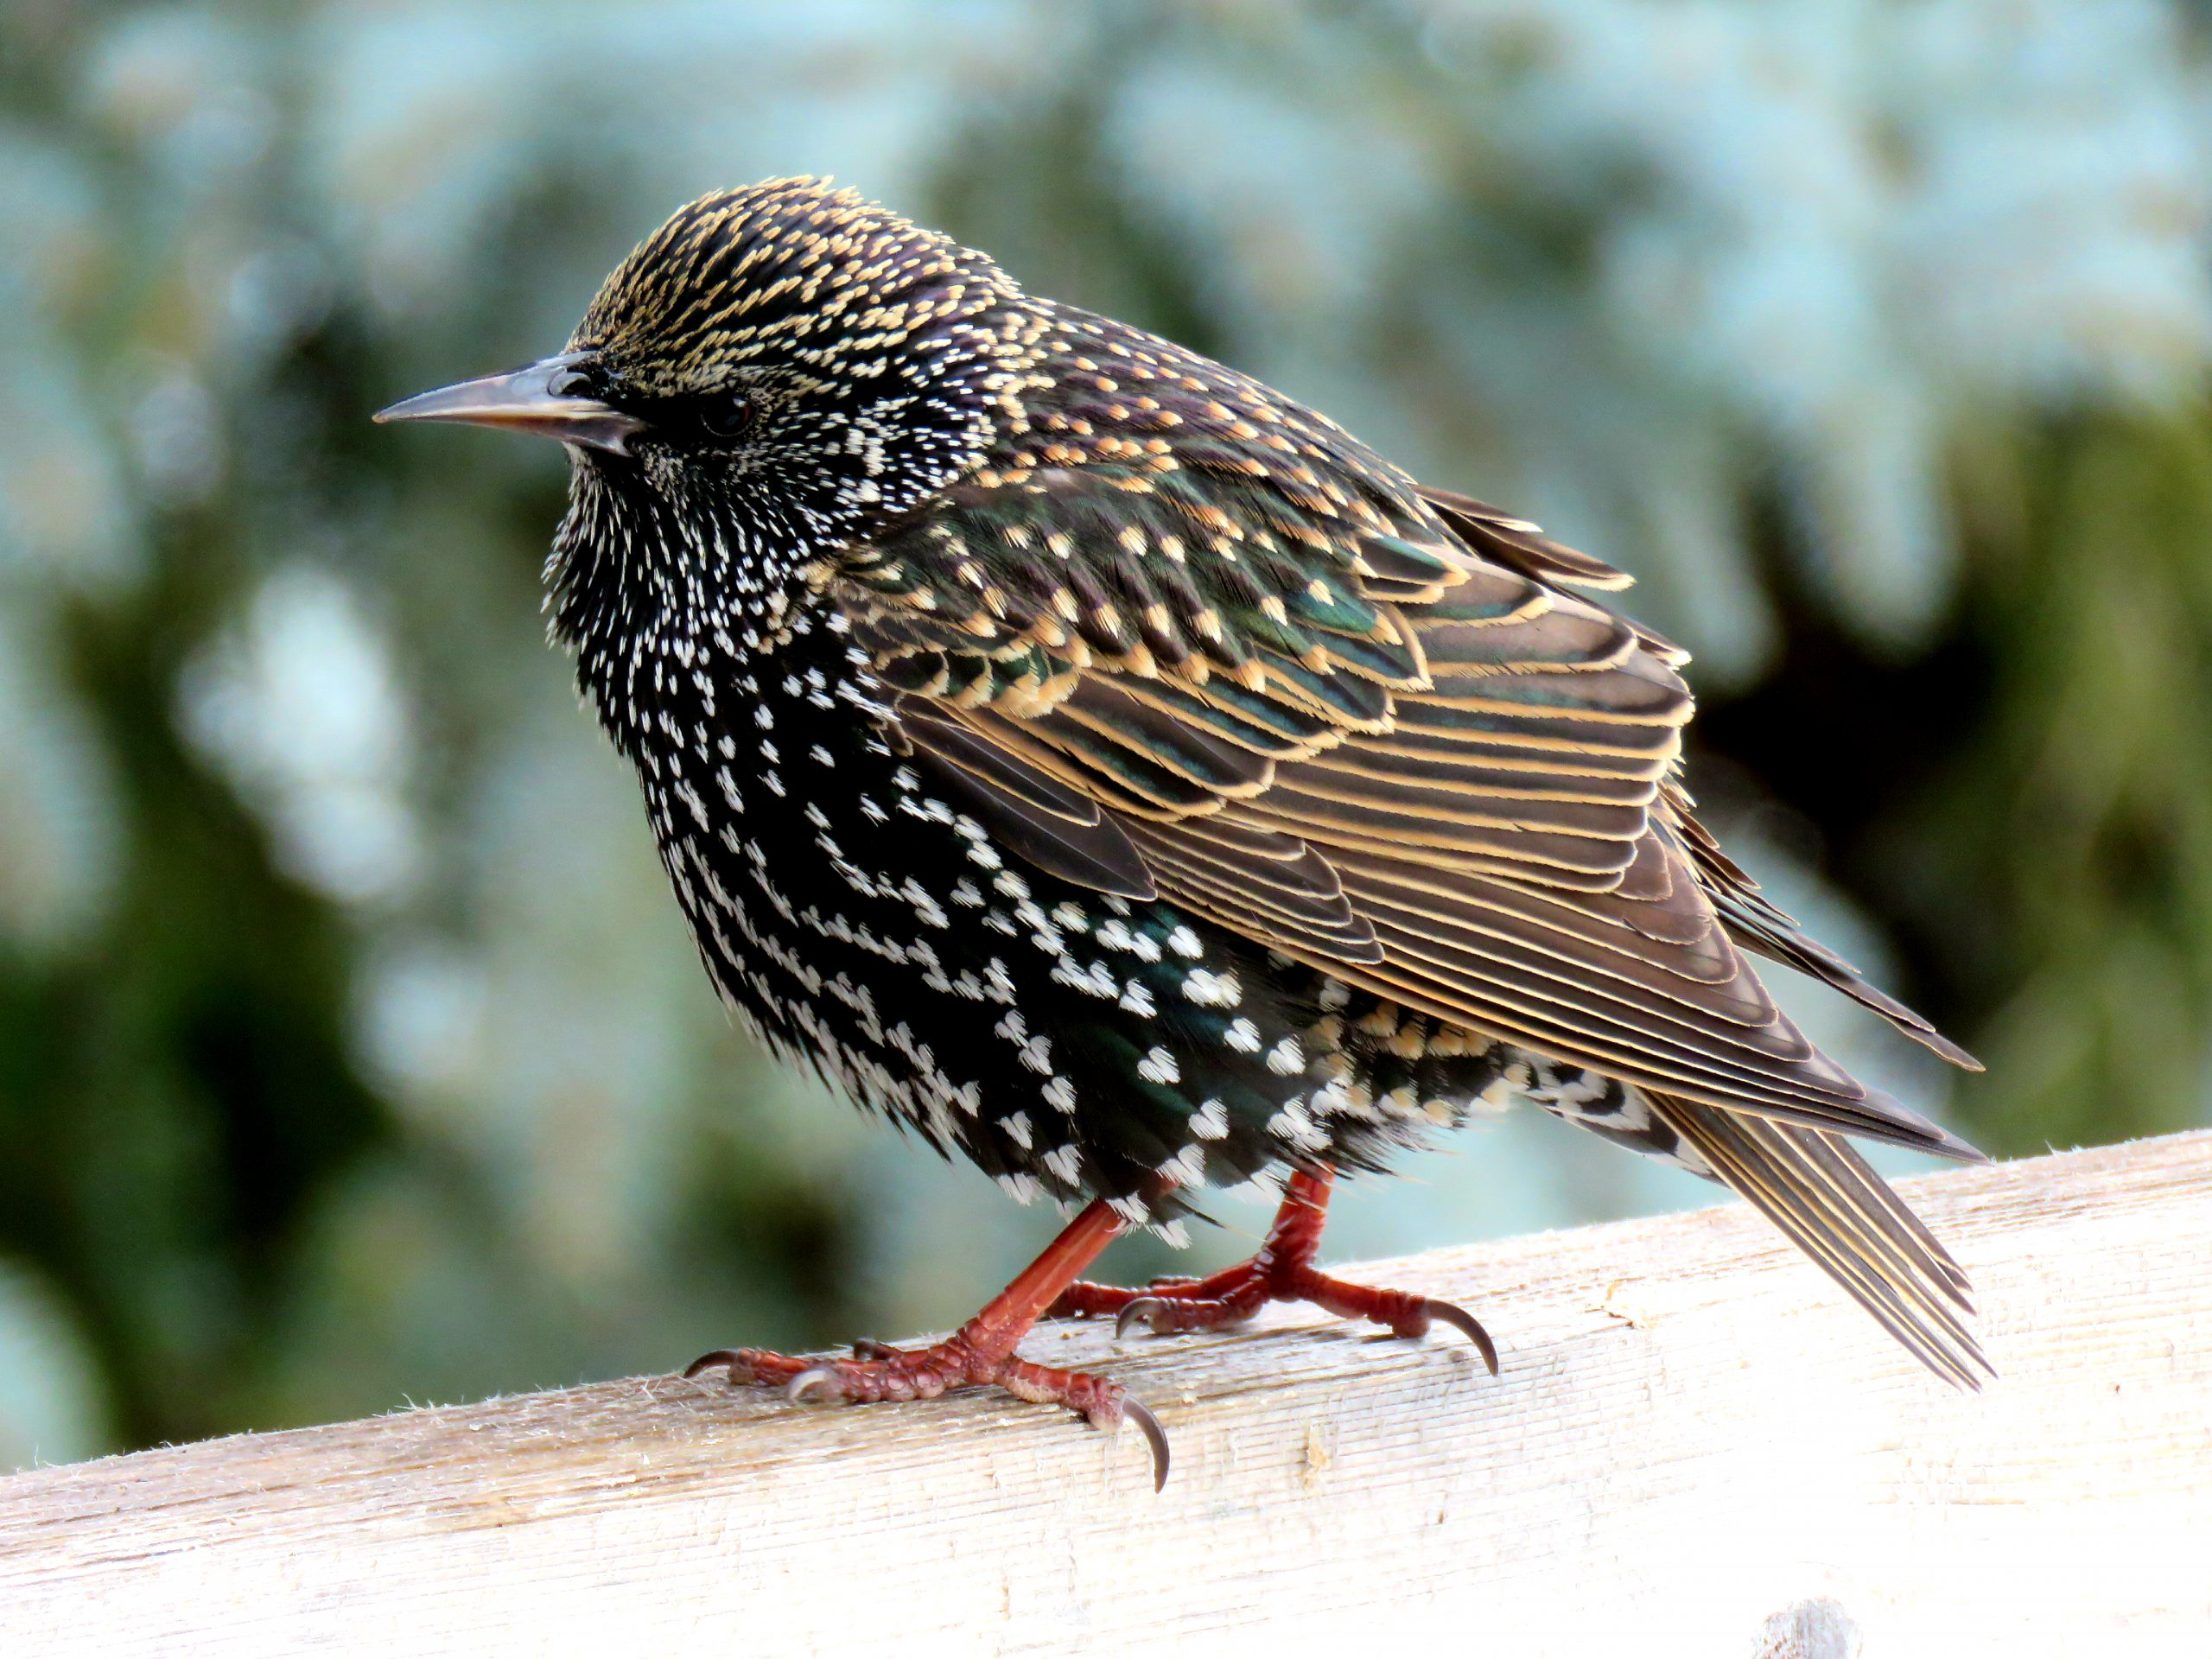 A European Starling on a fence